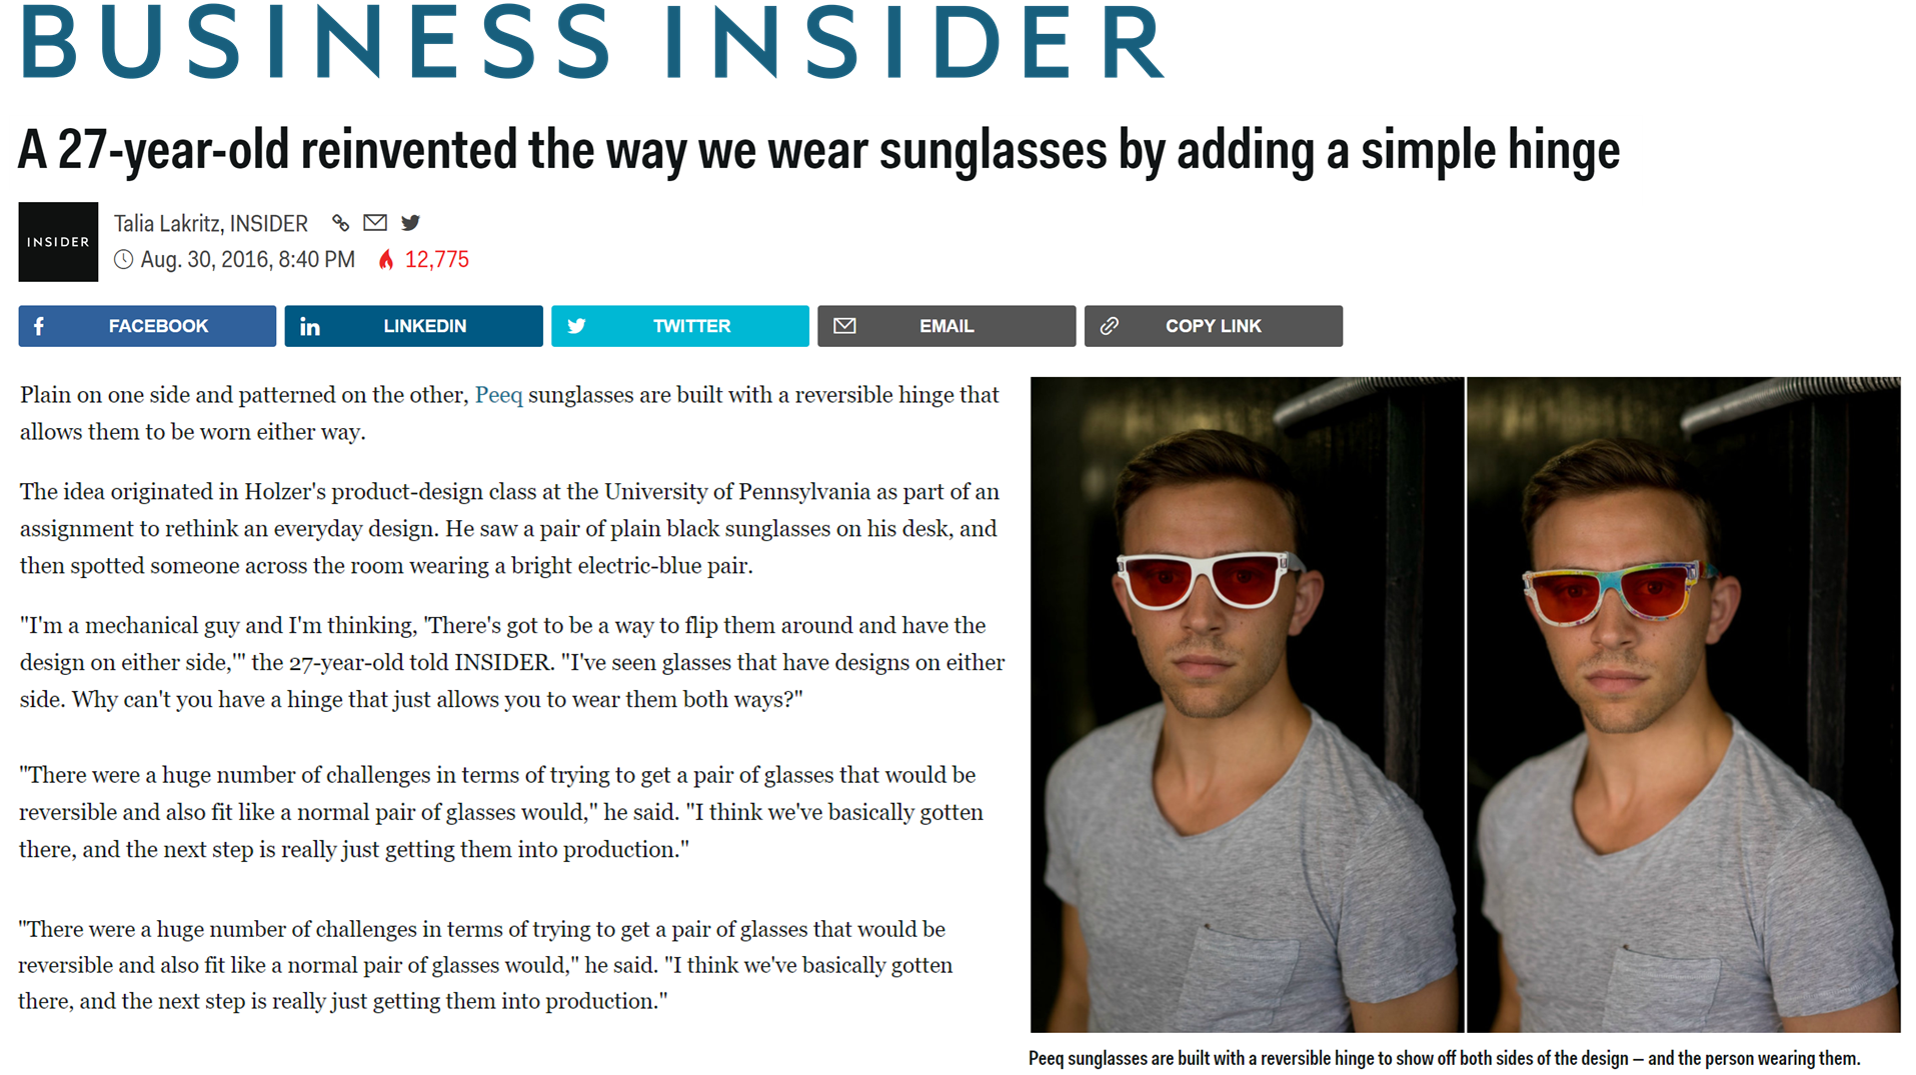 Full Article Available on Business Insider Here